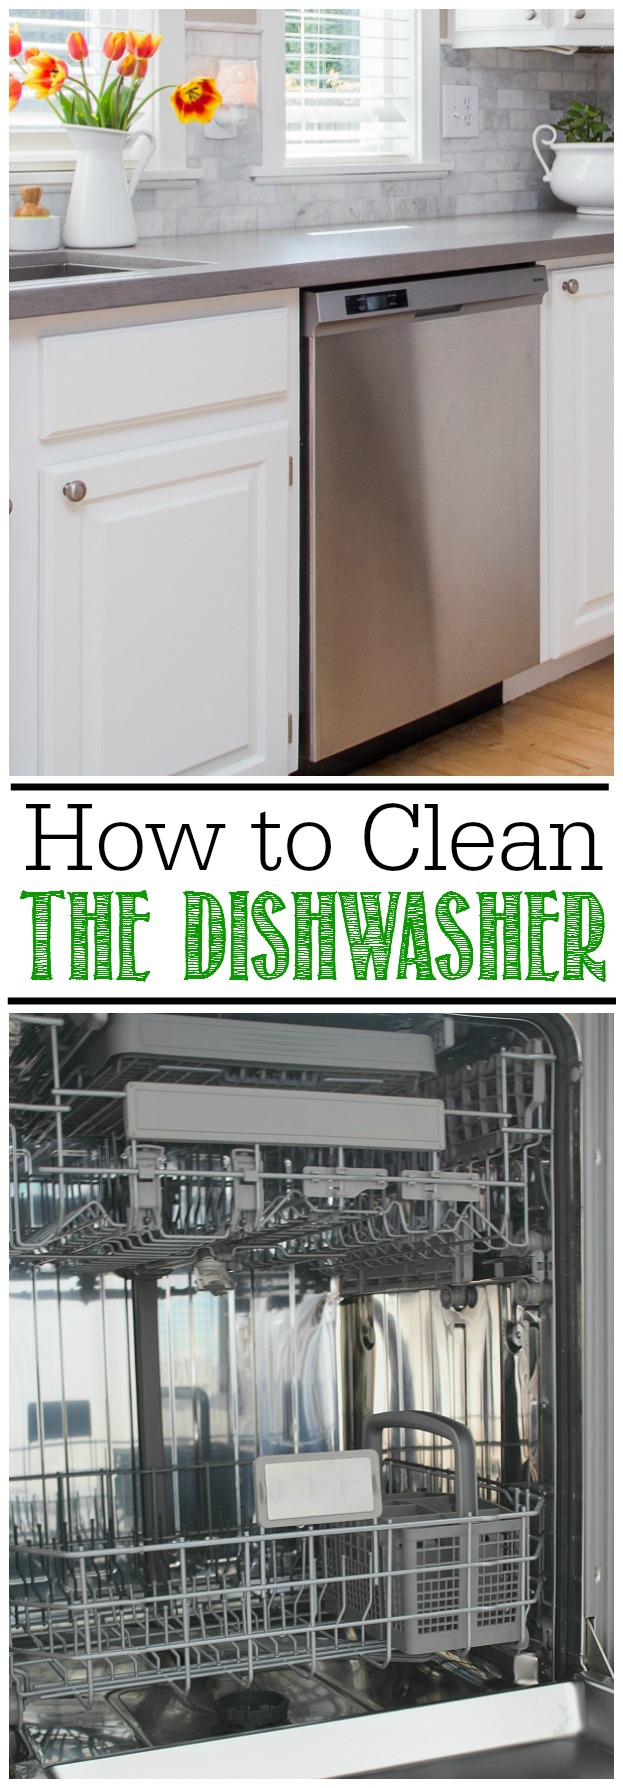 Great tutorial on how to clean a dishwasher. Lots of little places I didn't know I had to clean!